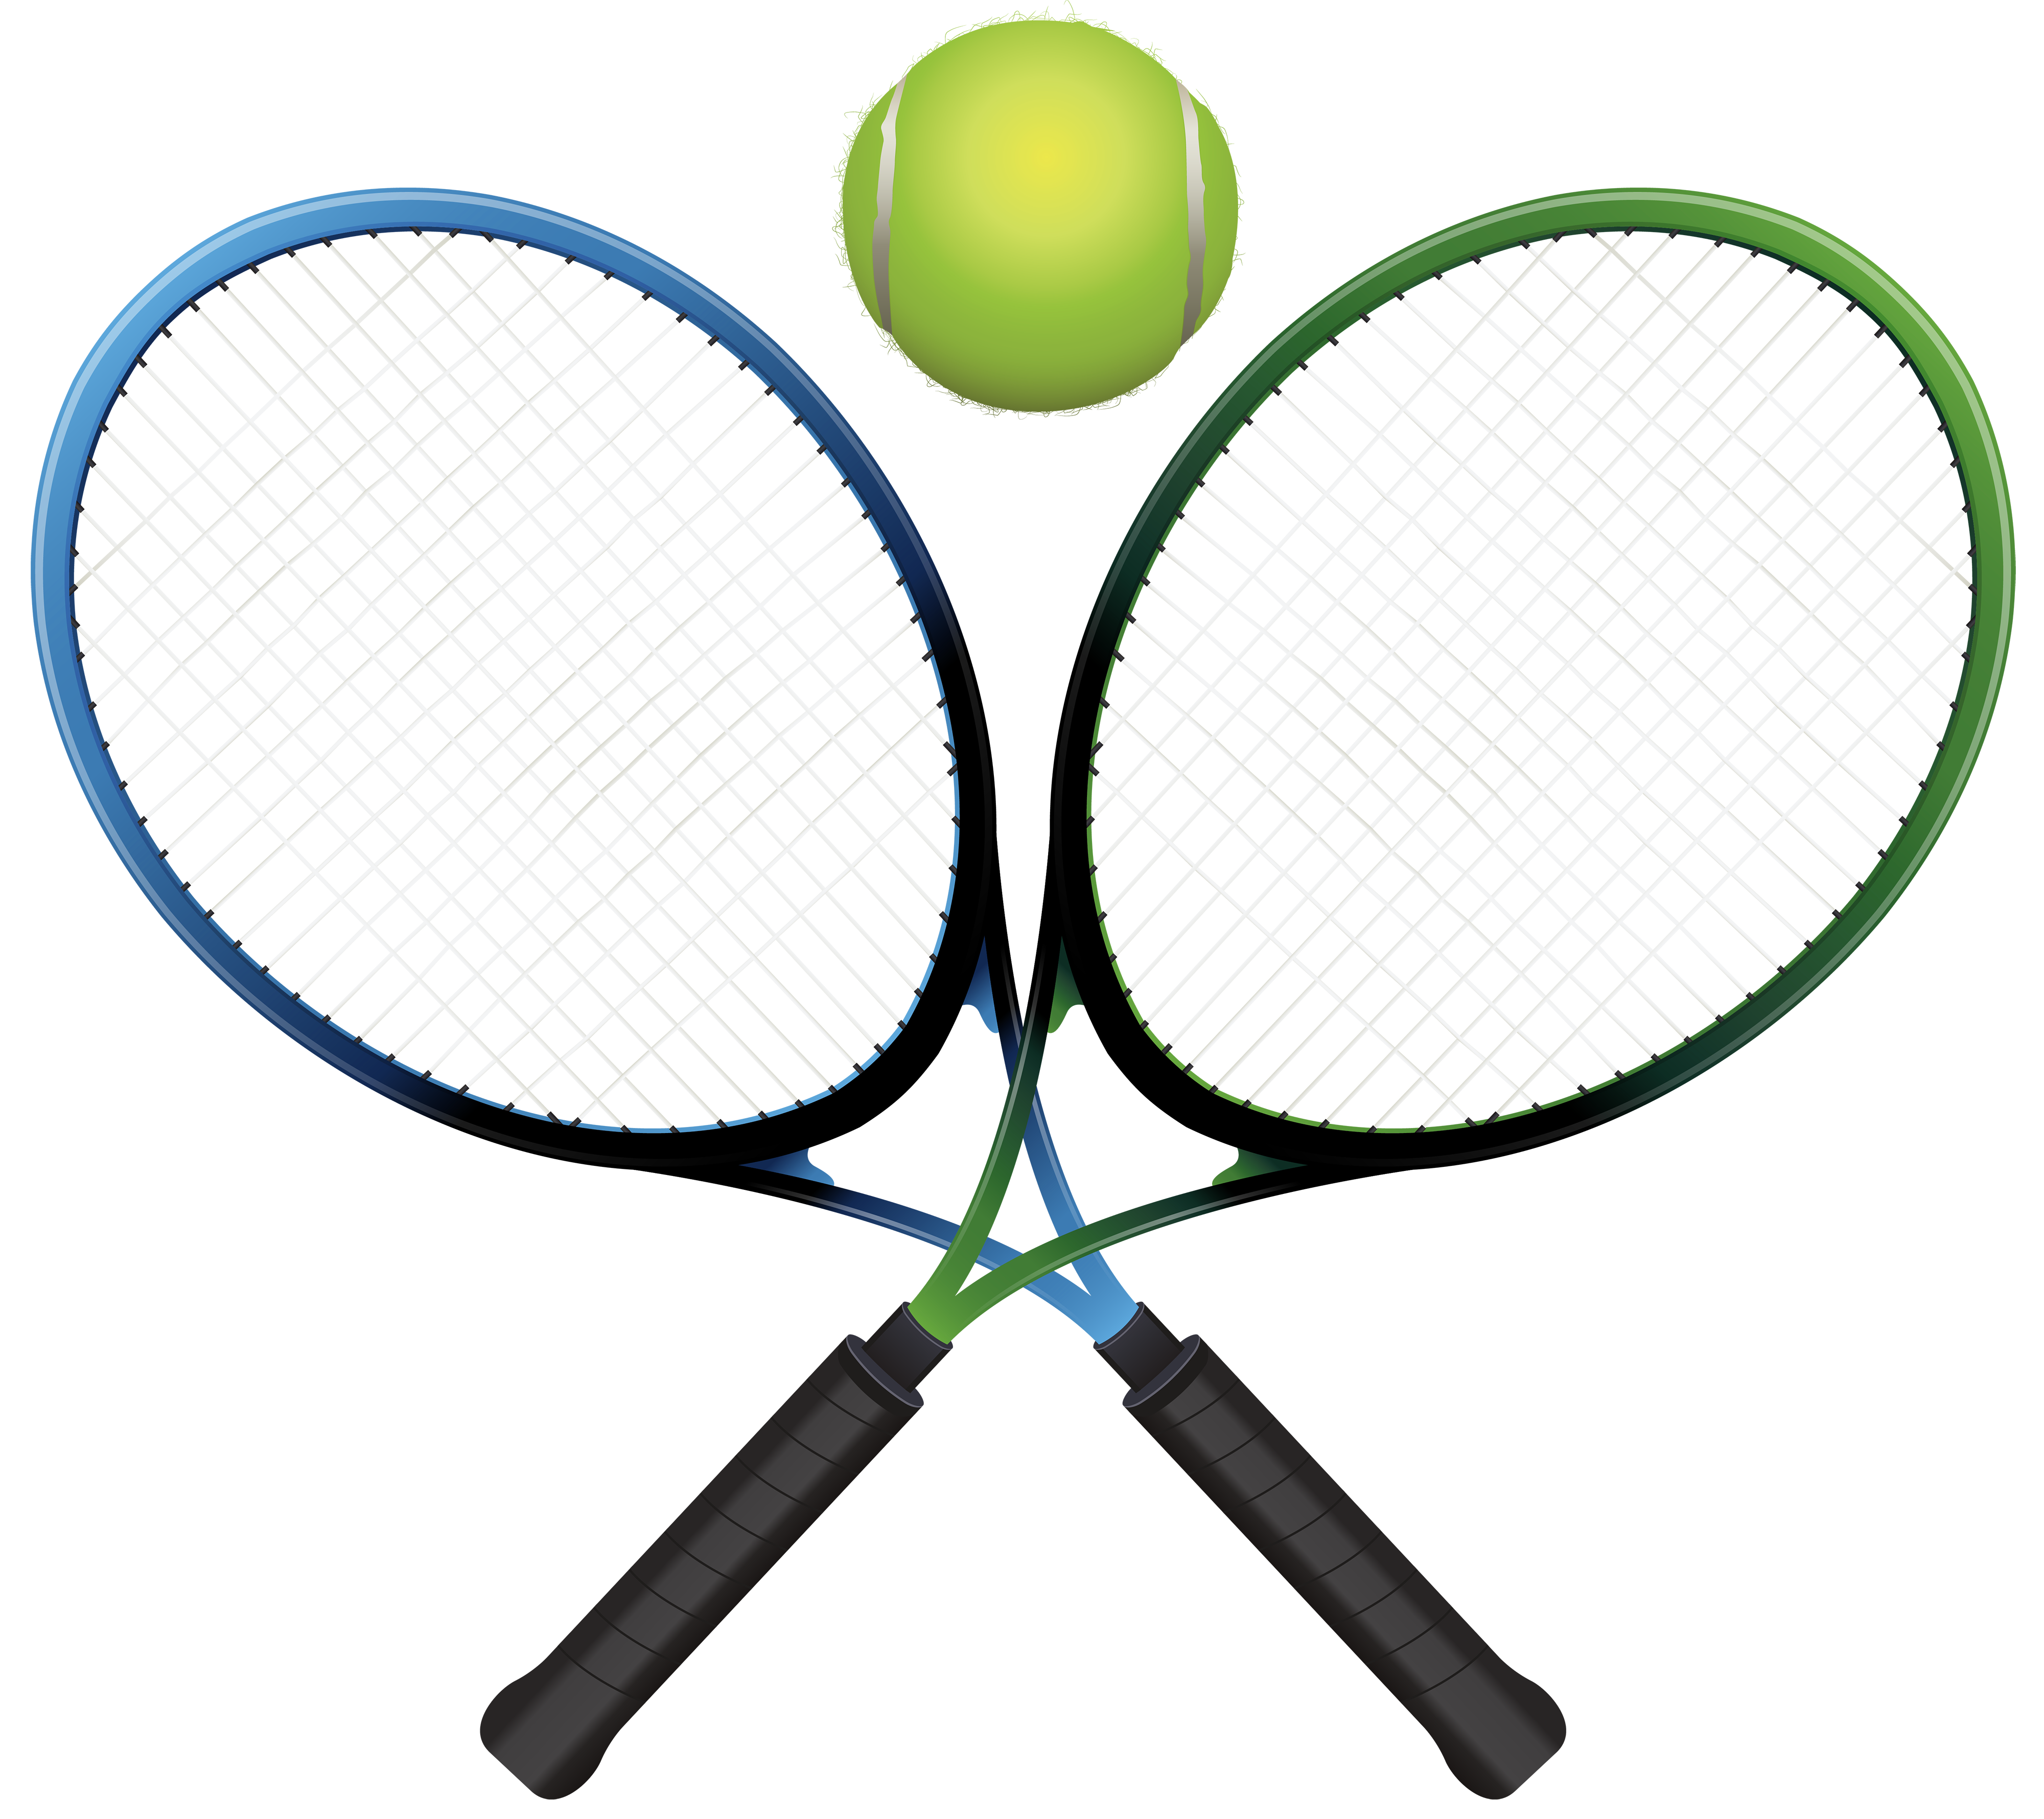 4000x3559 Tennis Rackets And Ball Png Clipart